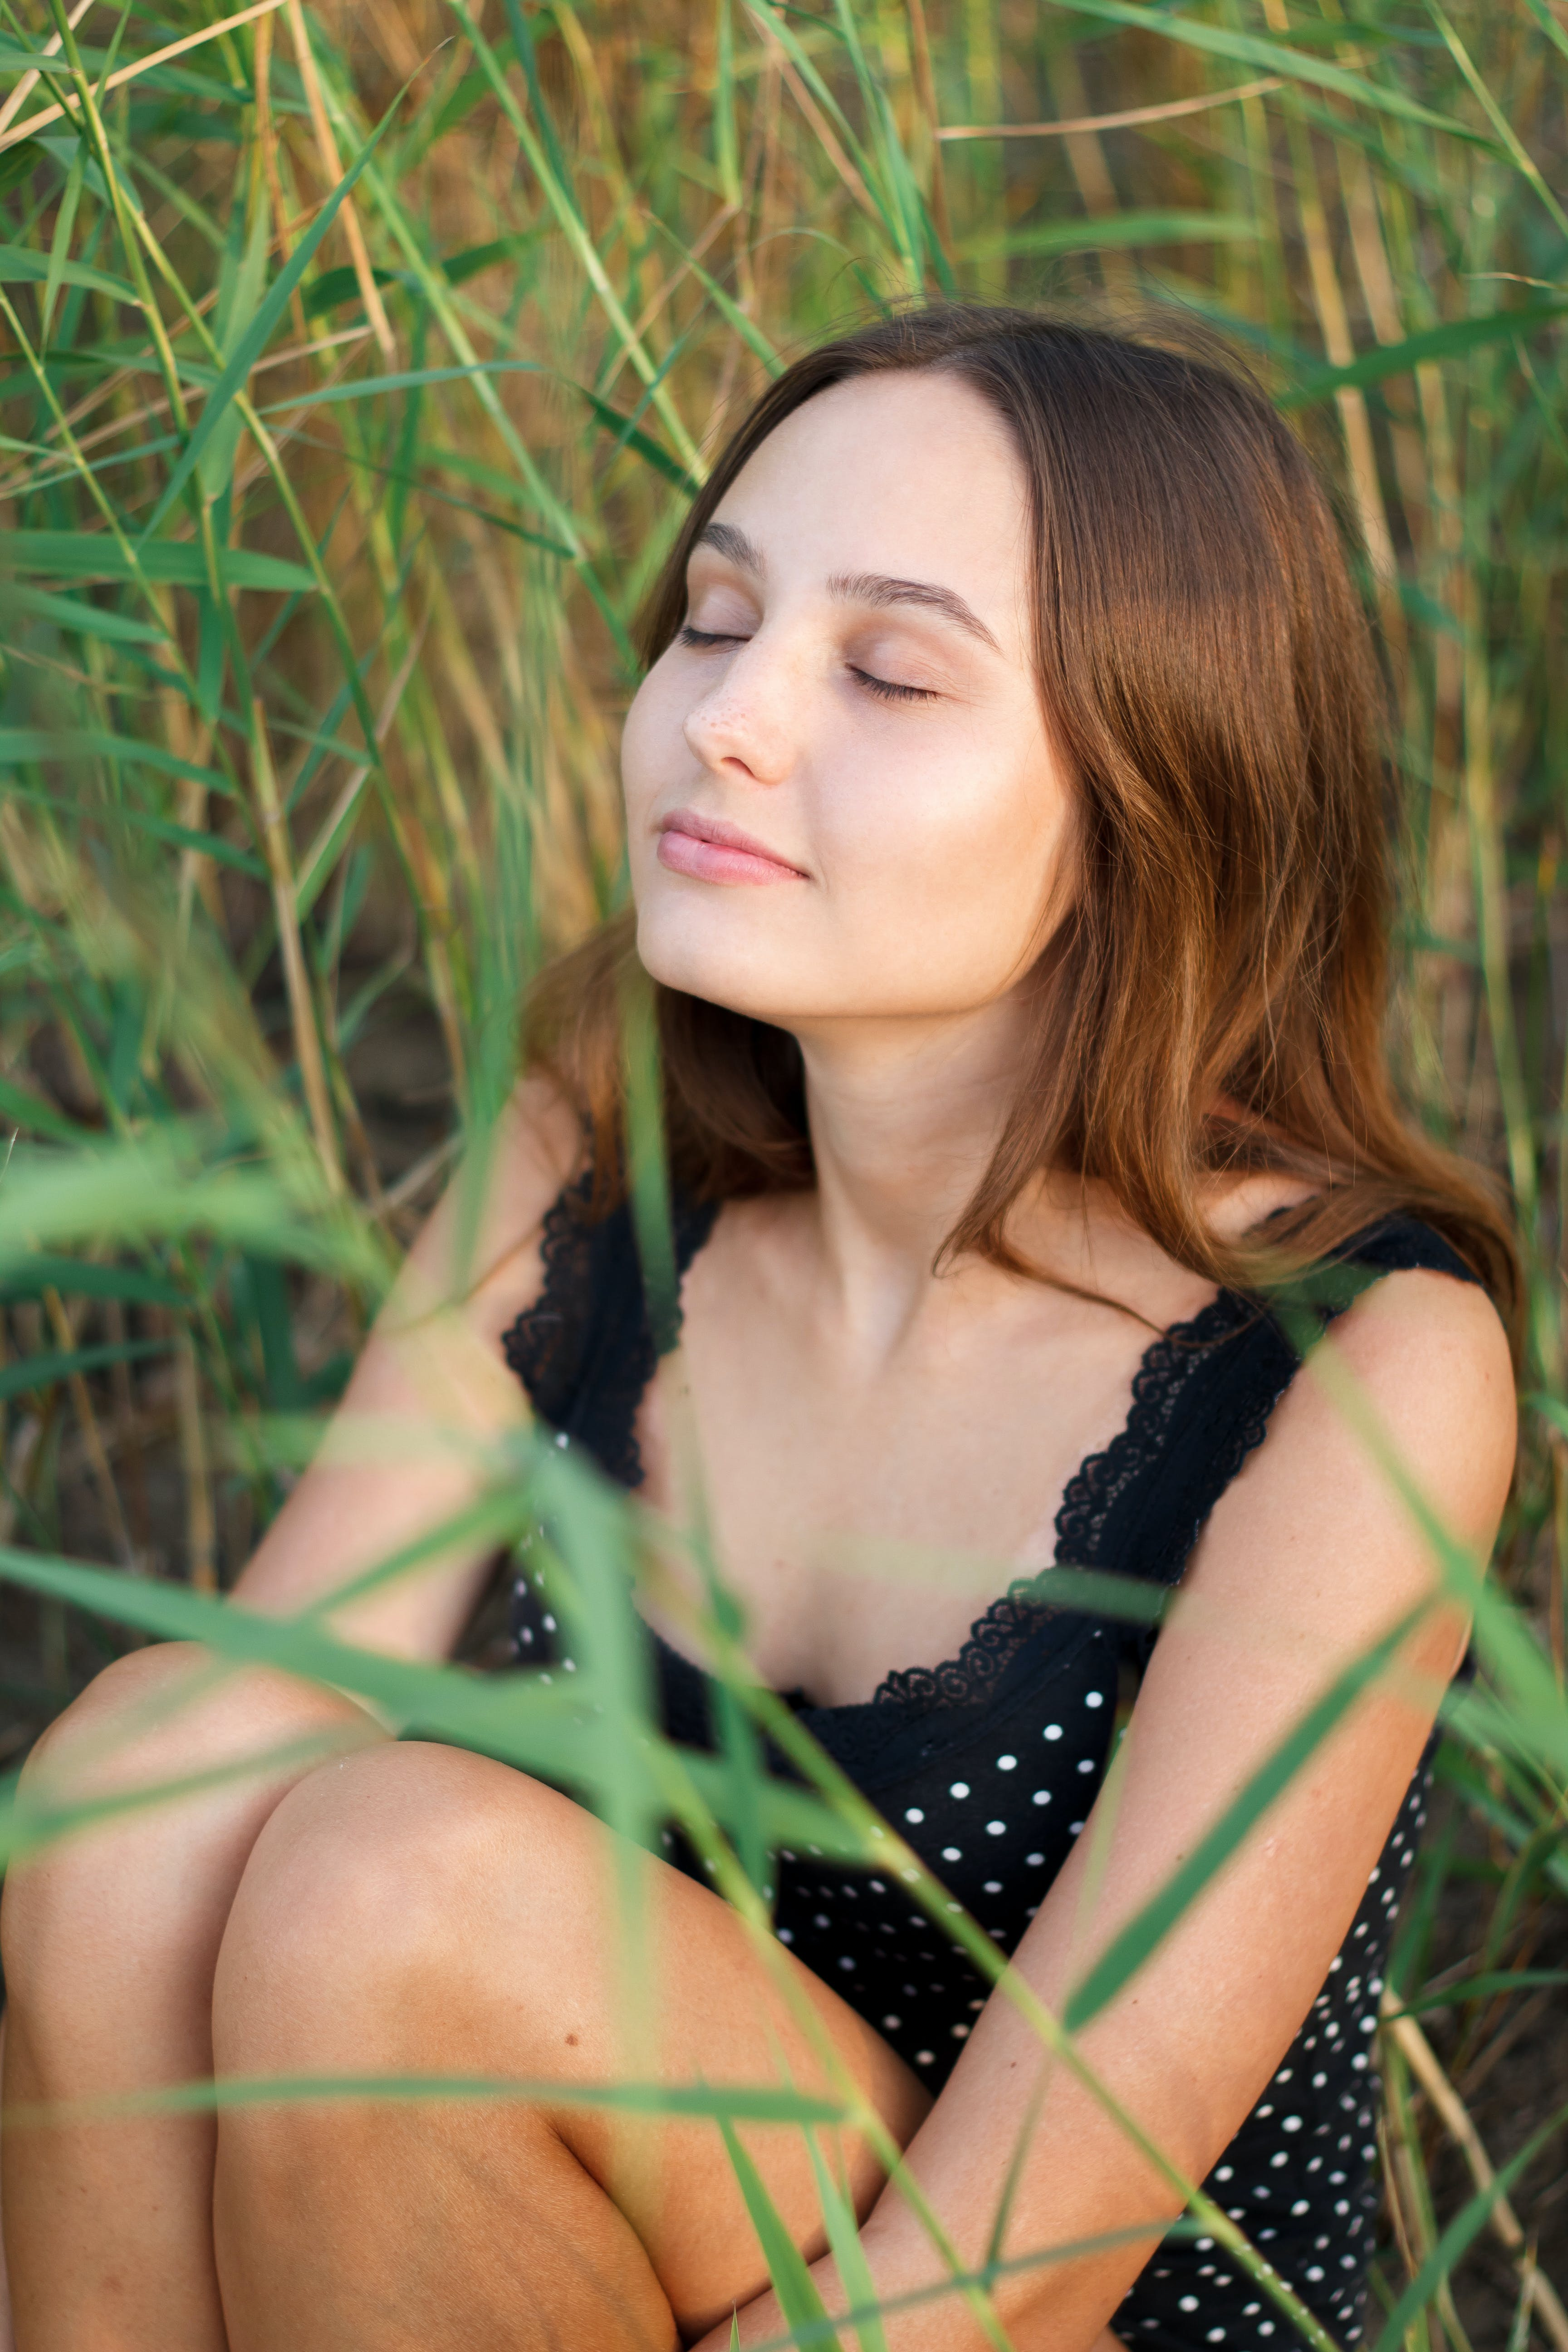 Photo of Woman Sitting on Green Grass